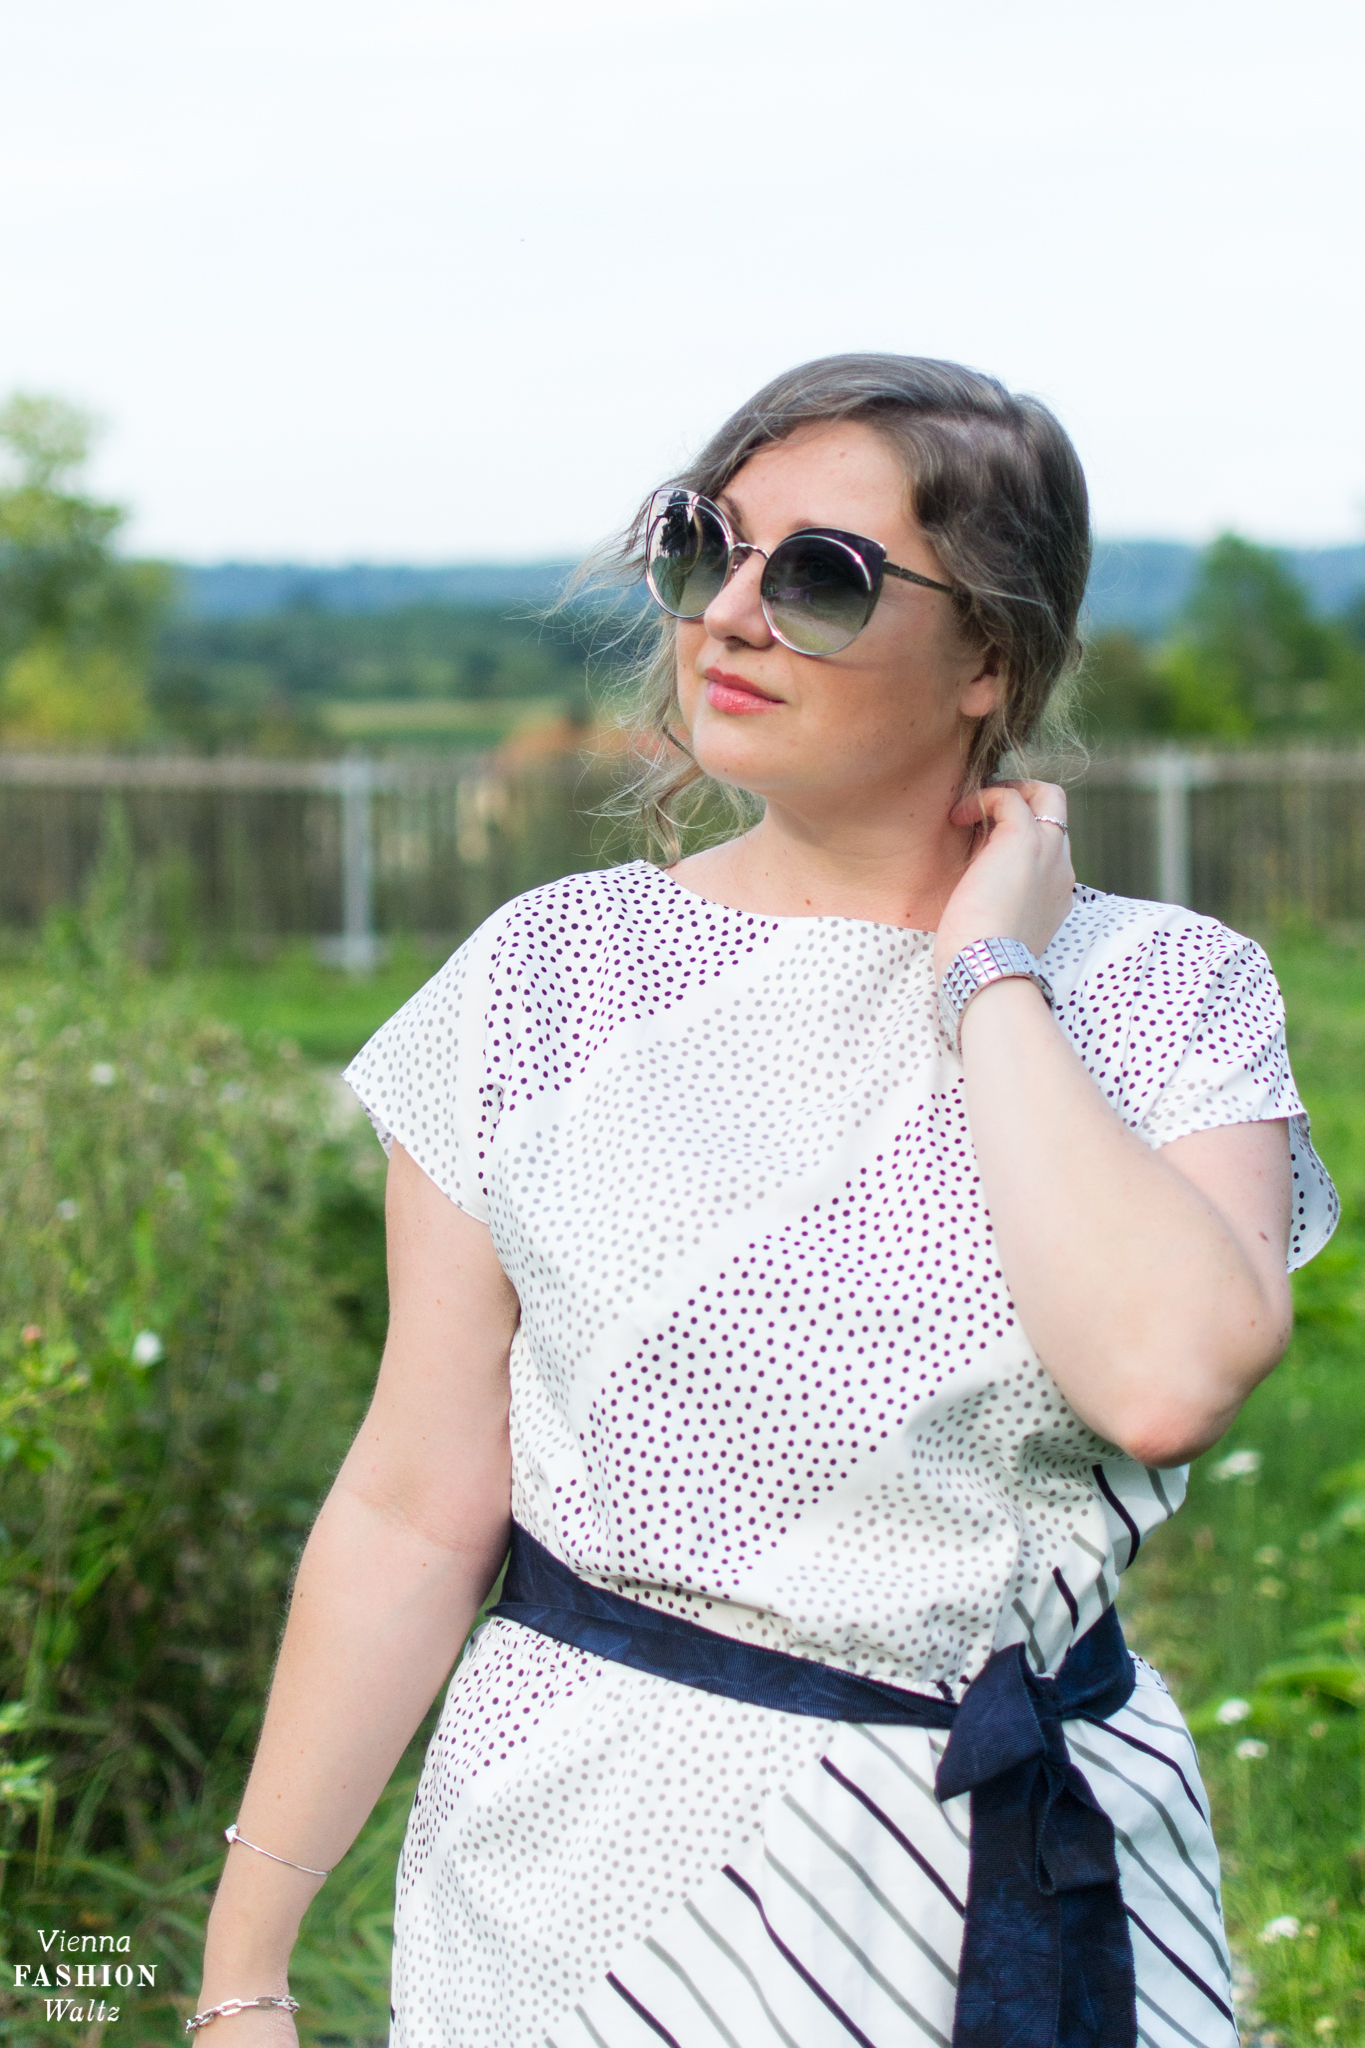 Styling Tipps: Vintage Outfit meets Polka Dots, FASHION TRENDS STYLE INSPIRATION VINTAGE Swarovski Brille, Adidas Stella McCartney Ultra Boost X